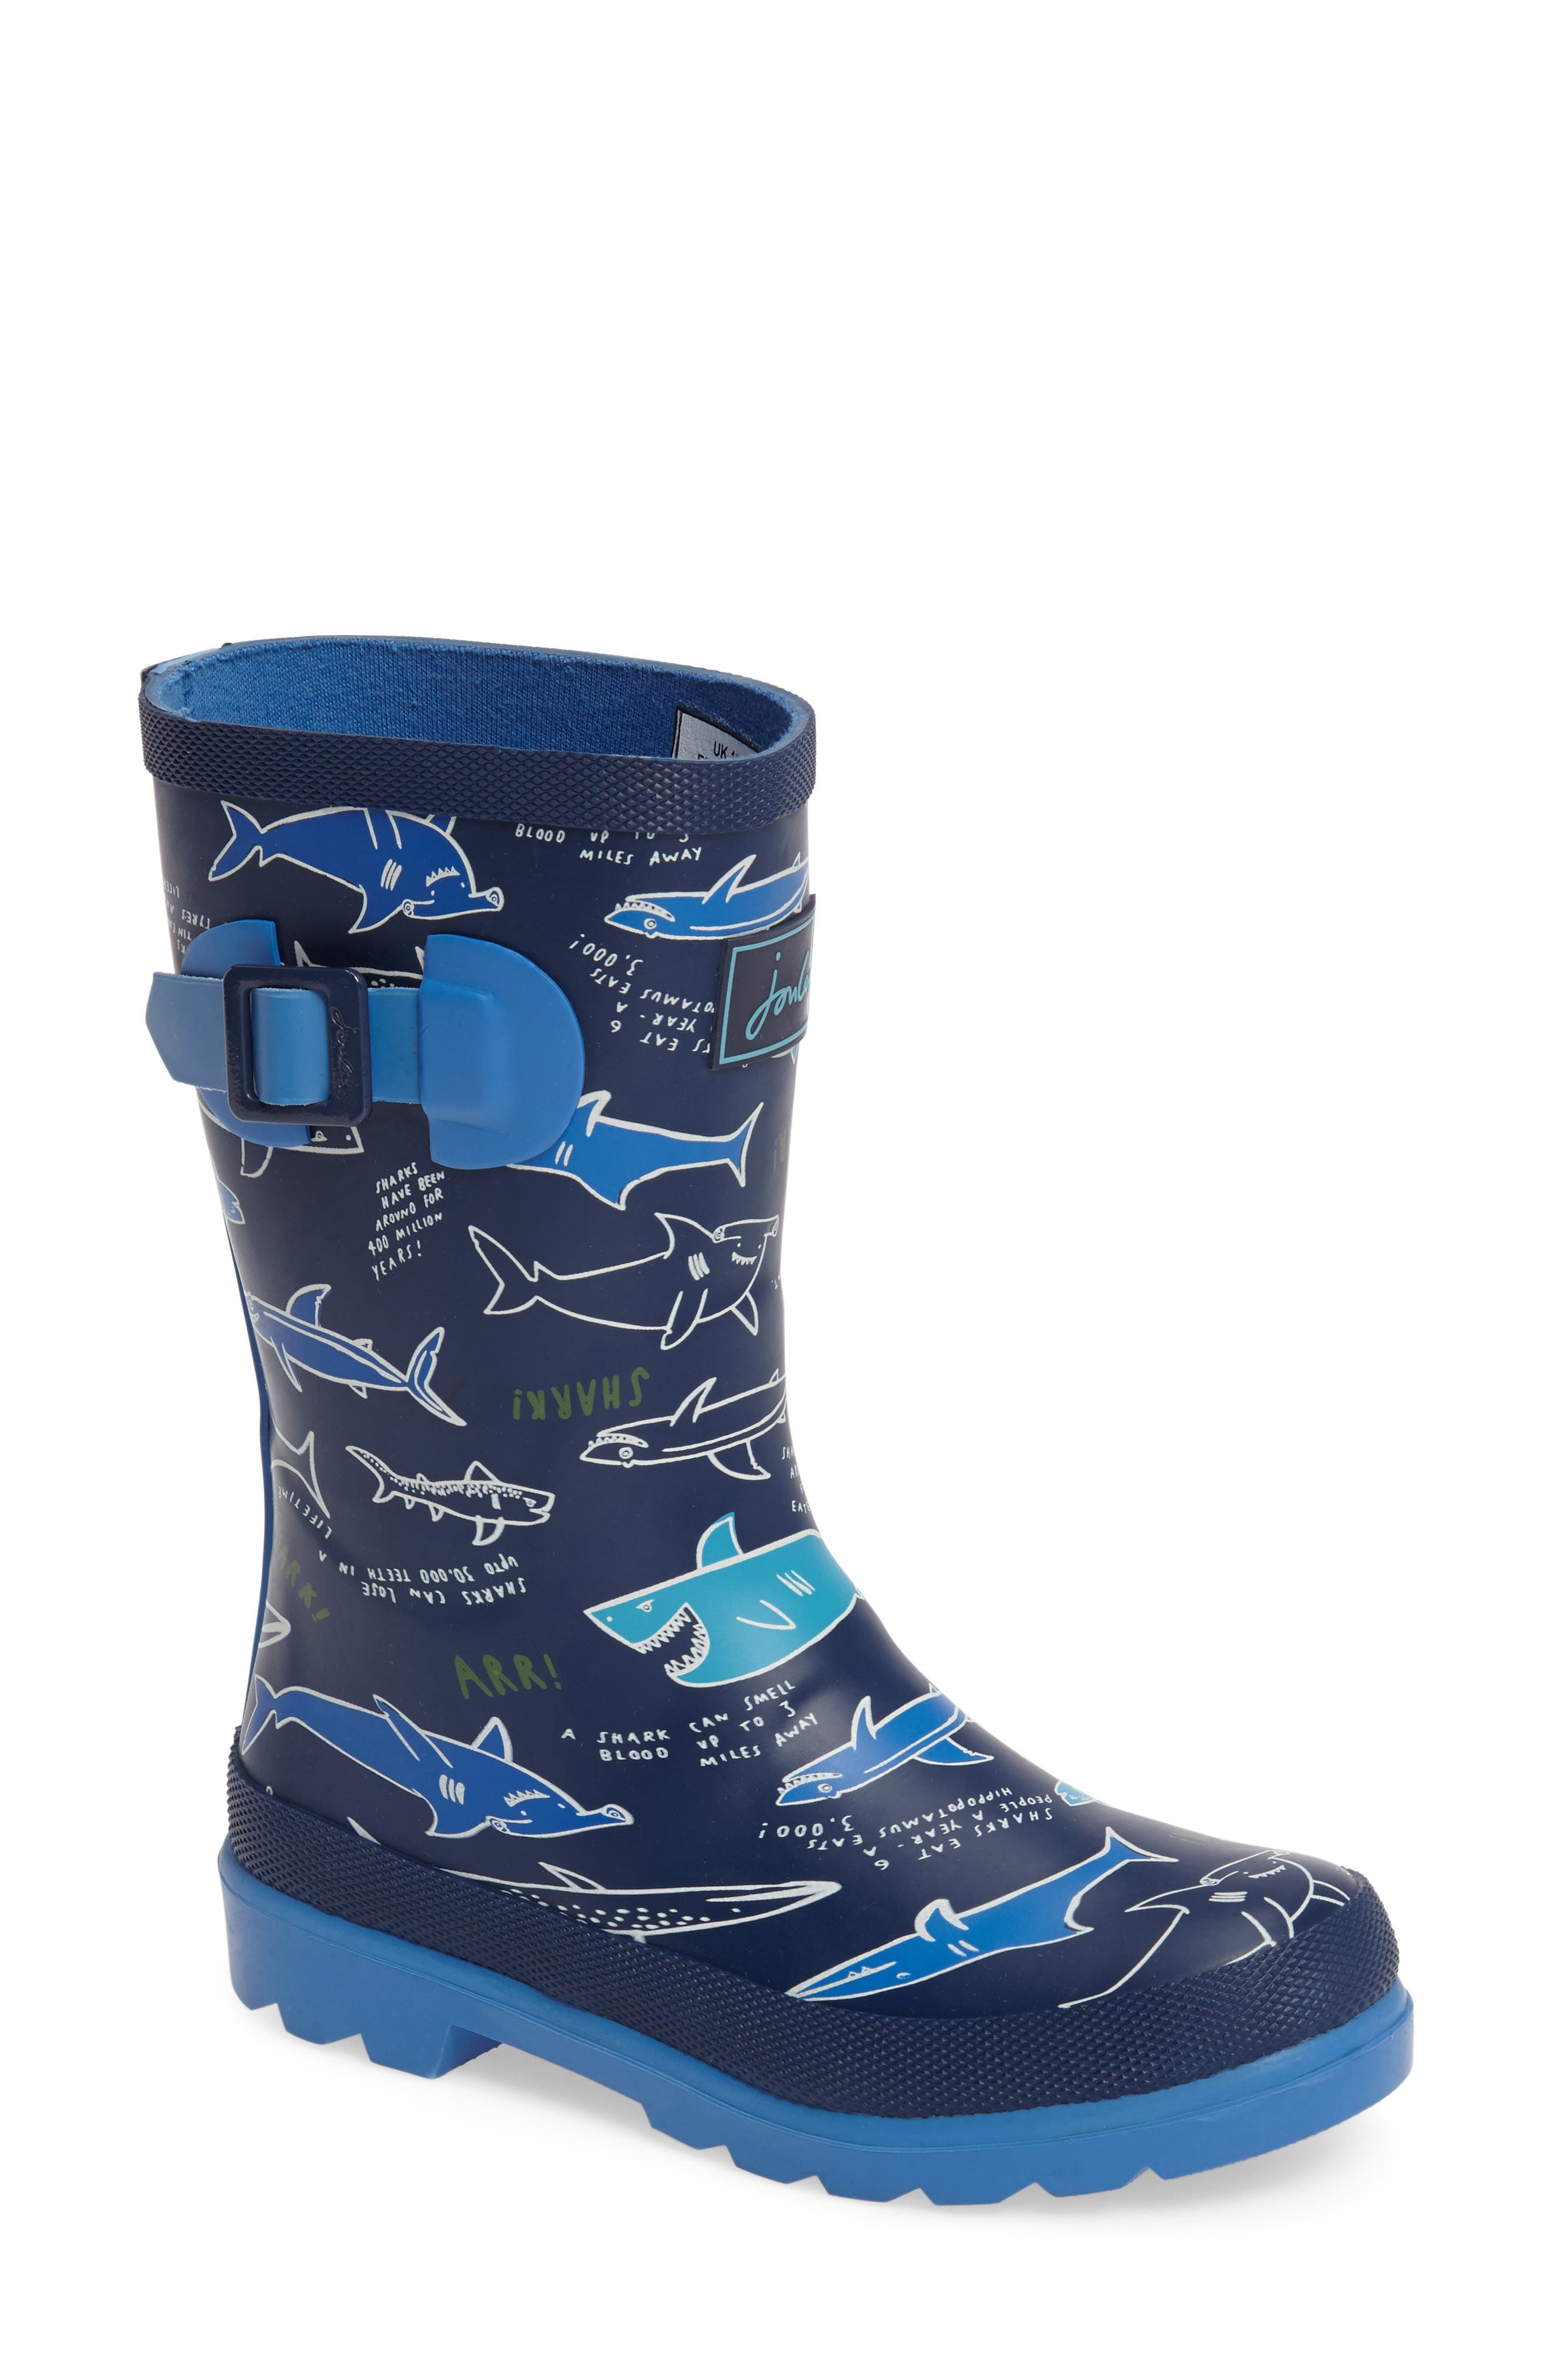 Joules Print Waterproof Rain Boot (Toddler, Little Kid & Big Kid)